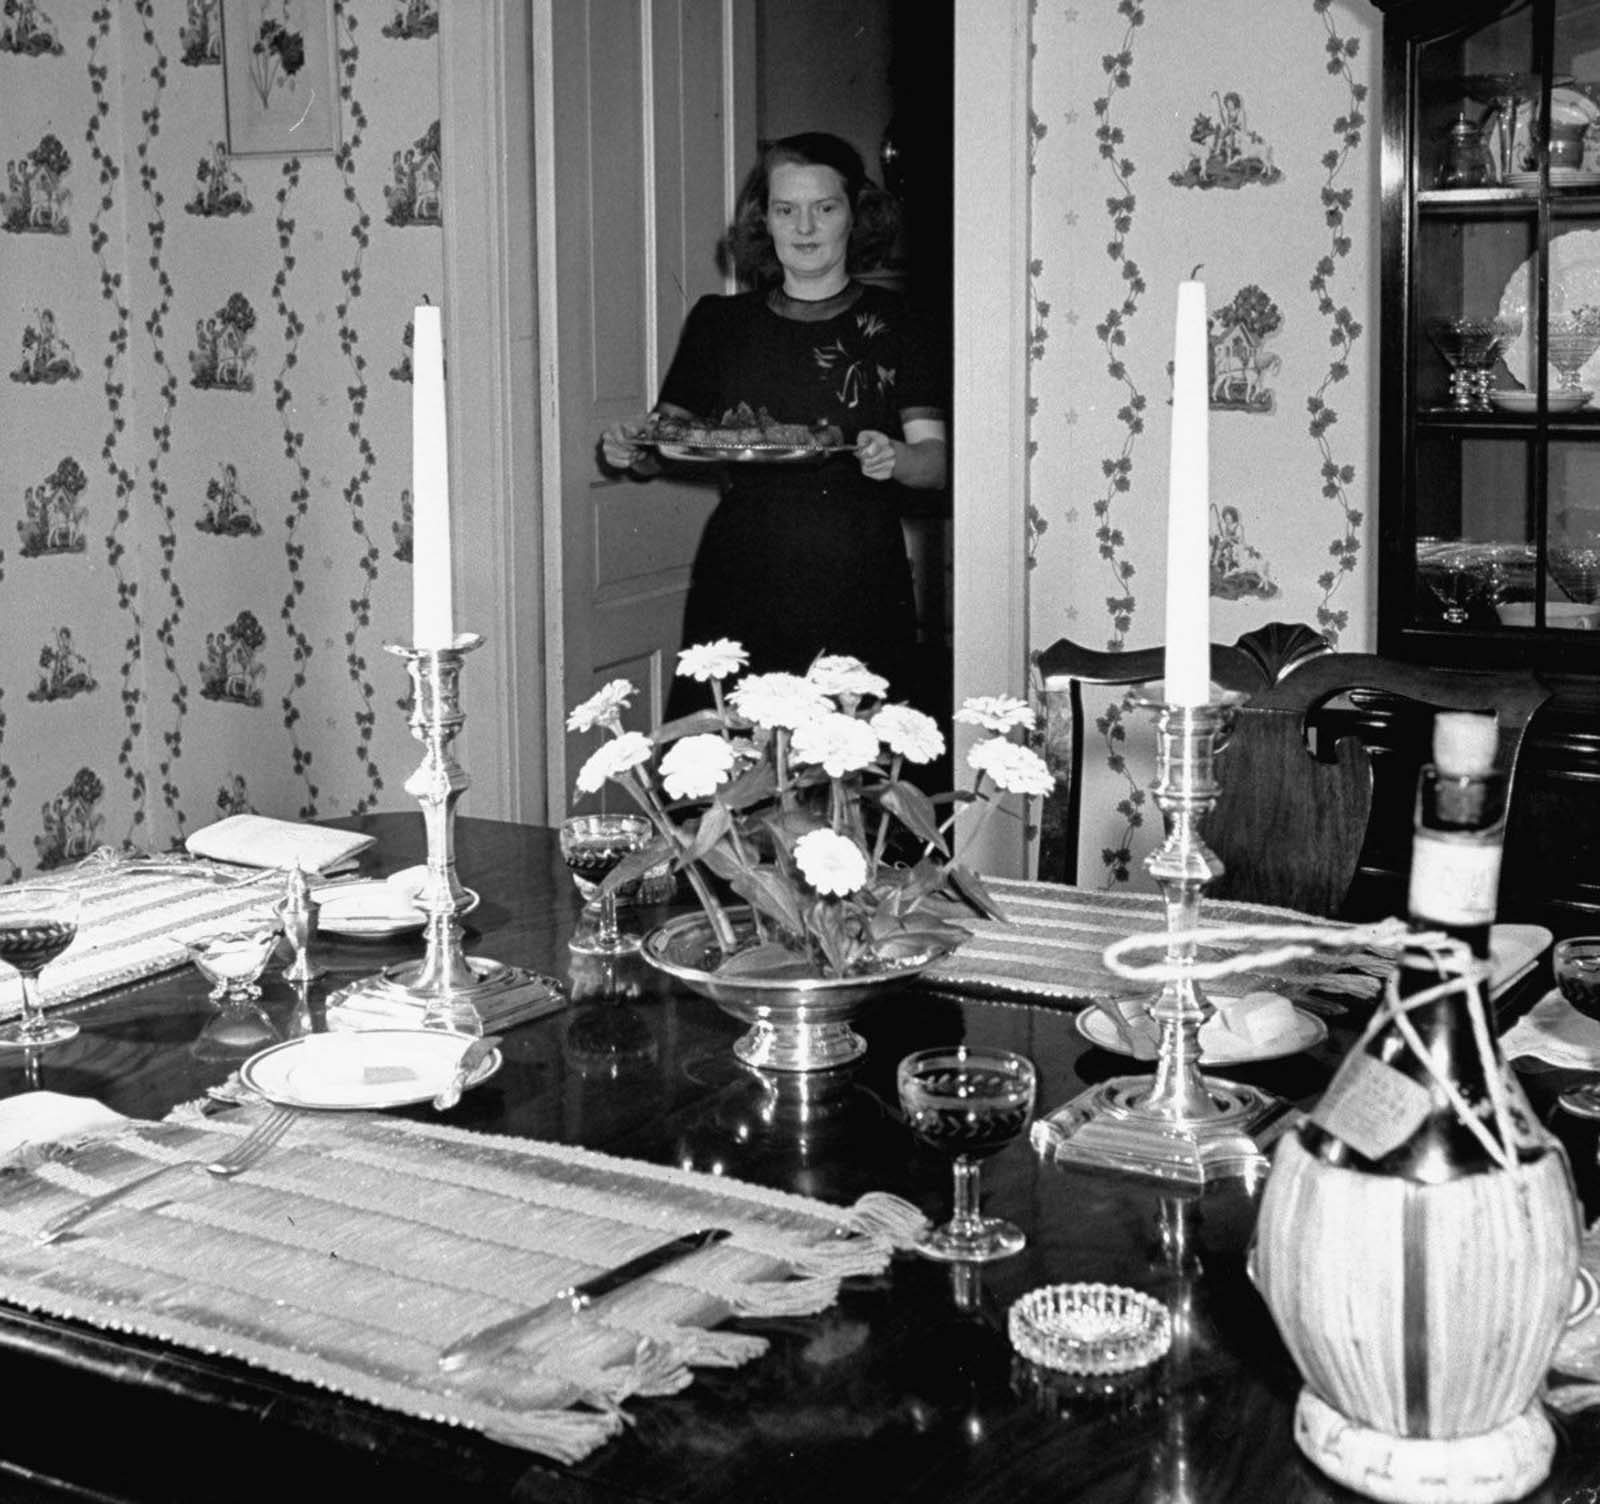 Jane prepares for dinner party by carrying a roast beef platter to the dining table she has carefully set with colorful placemats, silver candlesticks and silver centerpiece with flowers and a bottle of Chianti, as her guests finish cocktails in the living room.